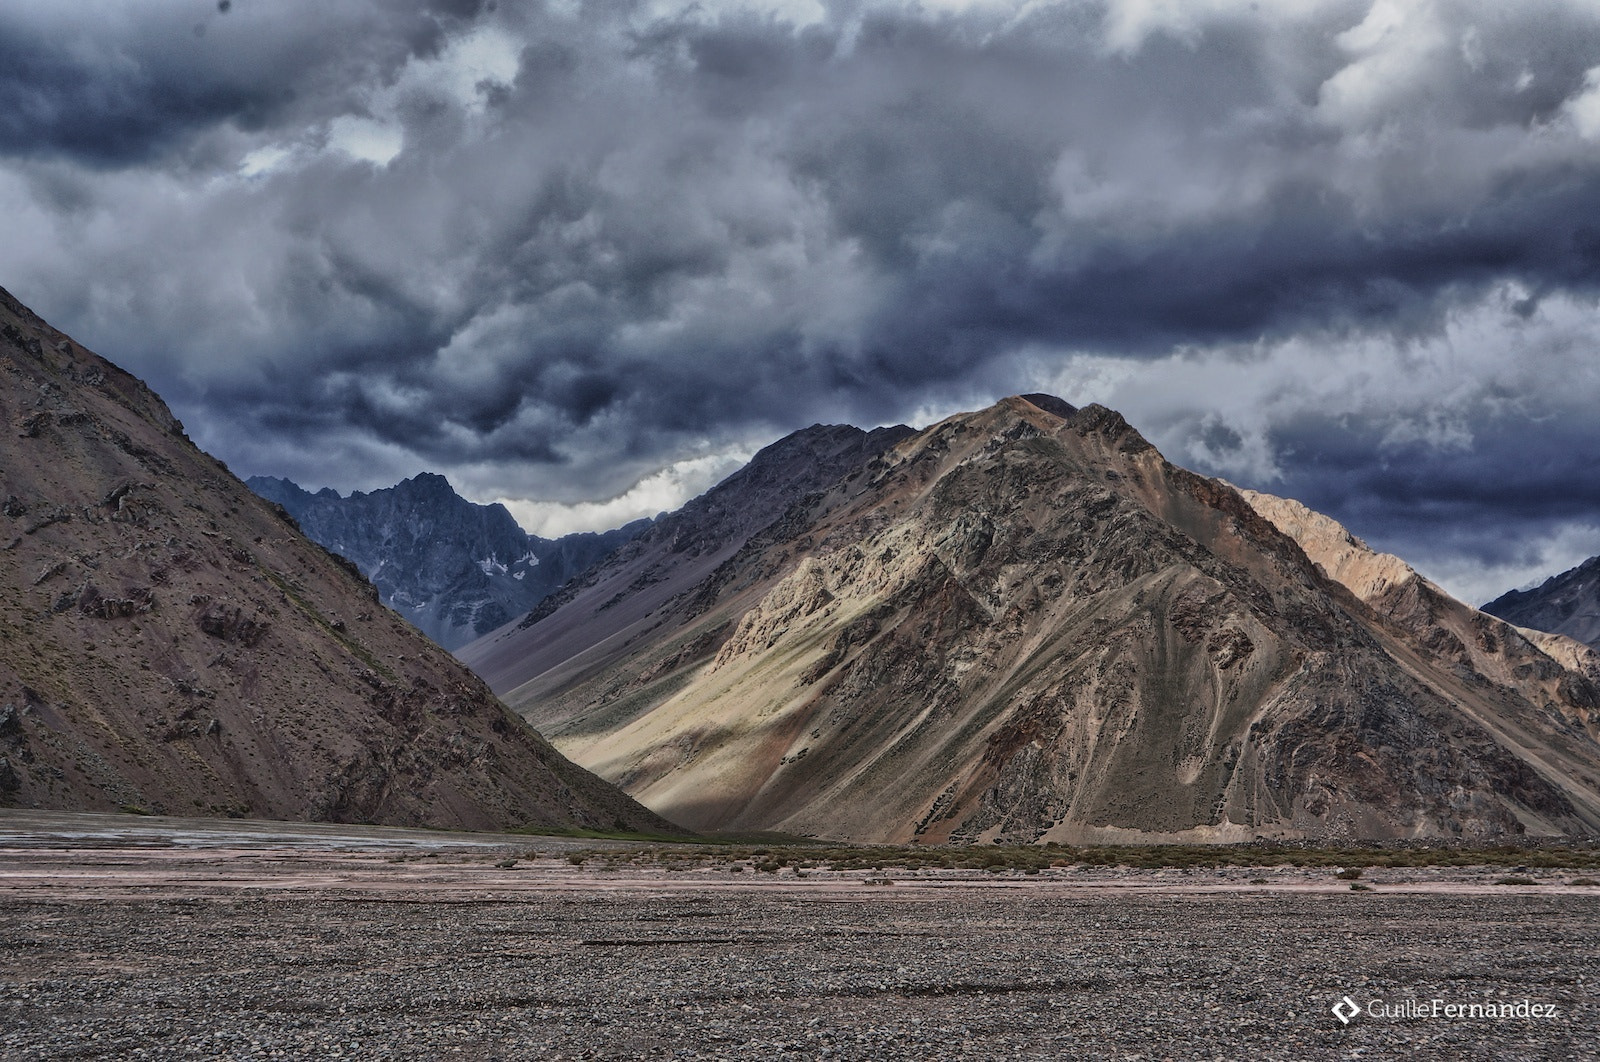 Photograph Embalse El Yeso by Guillermo Fernandez Brombley on 500px